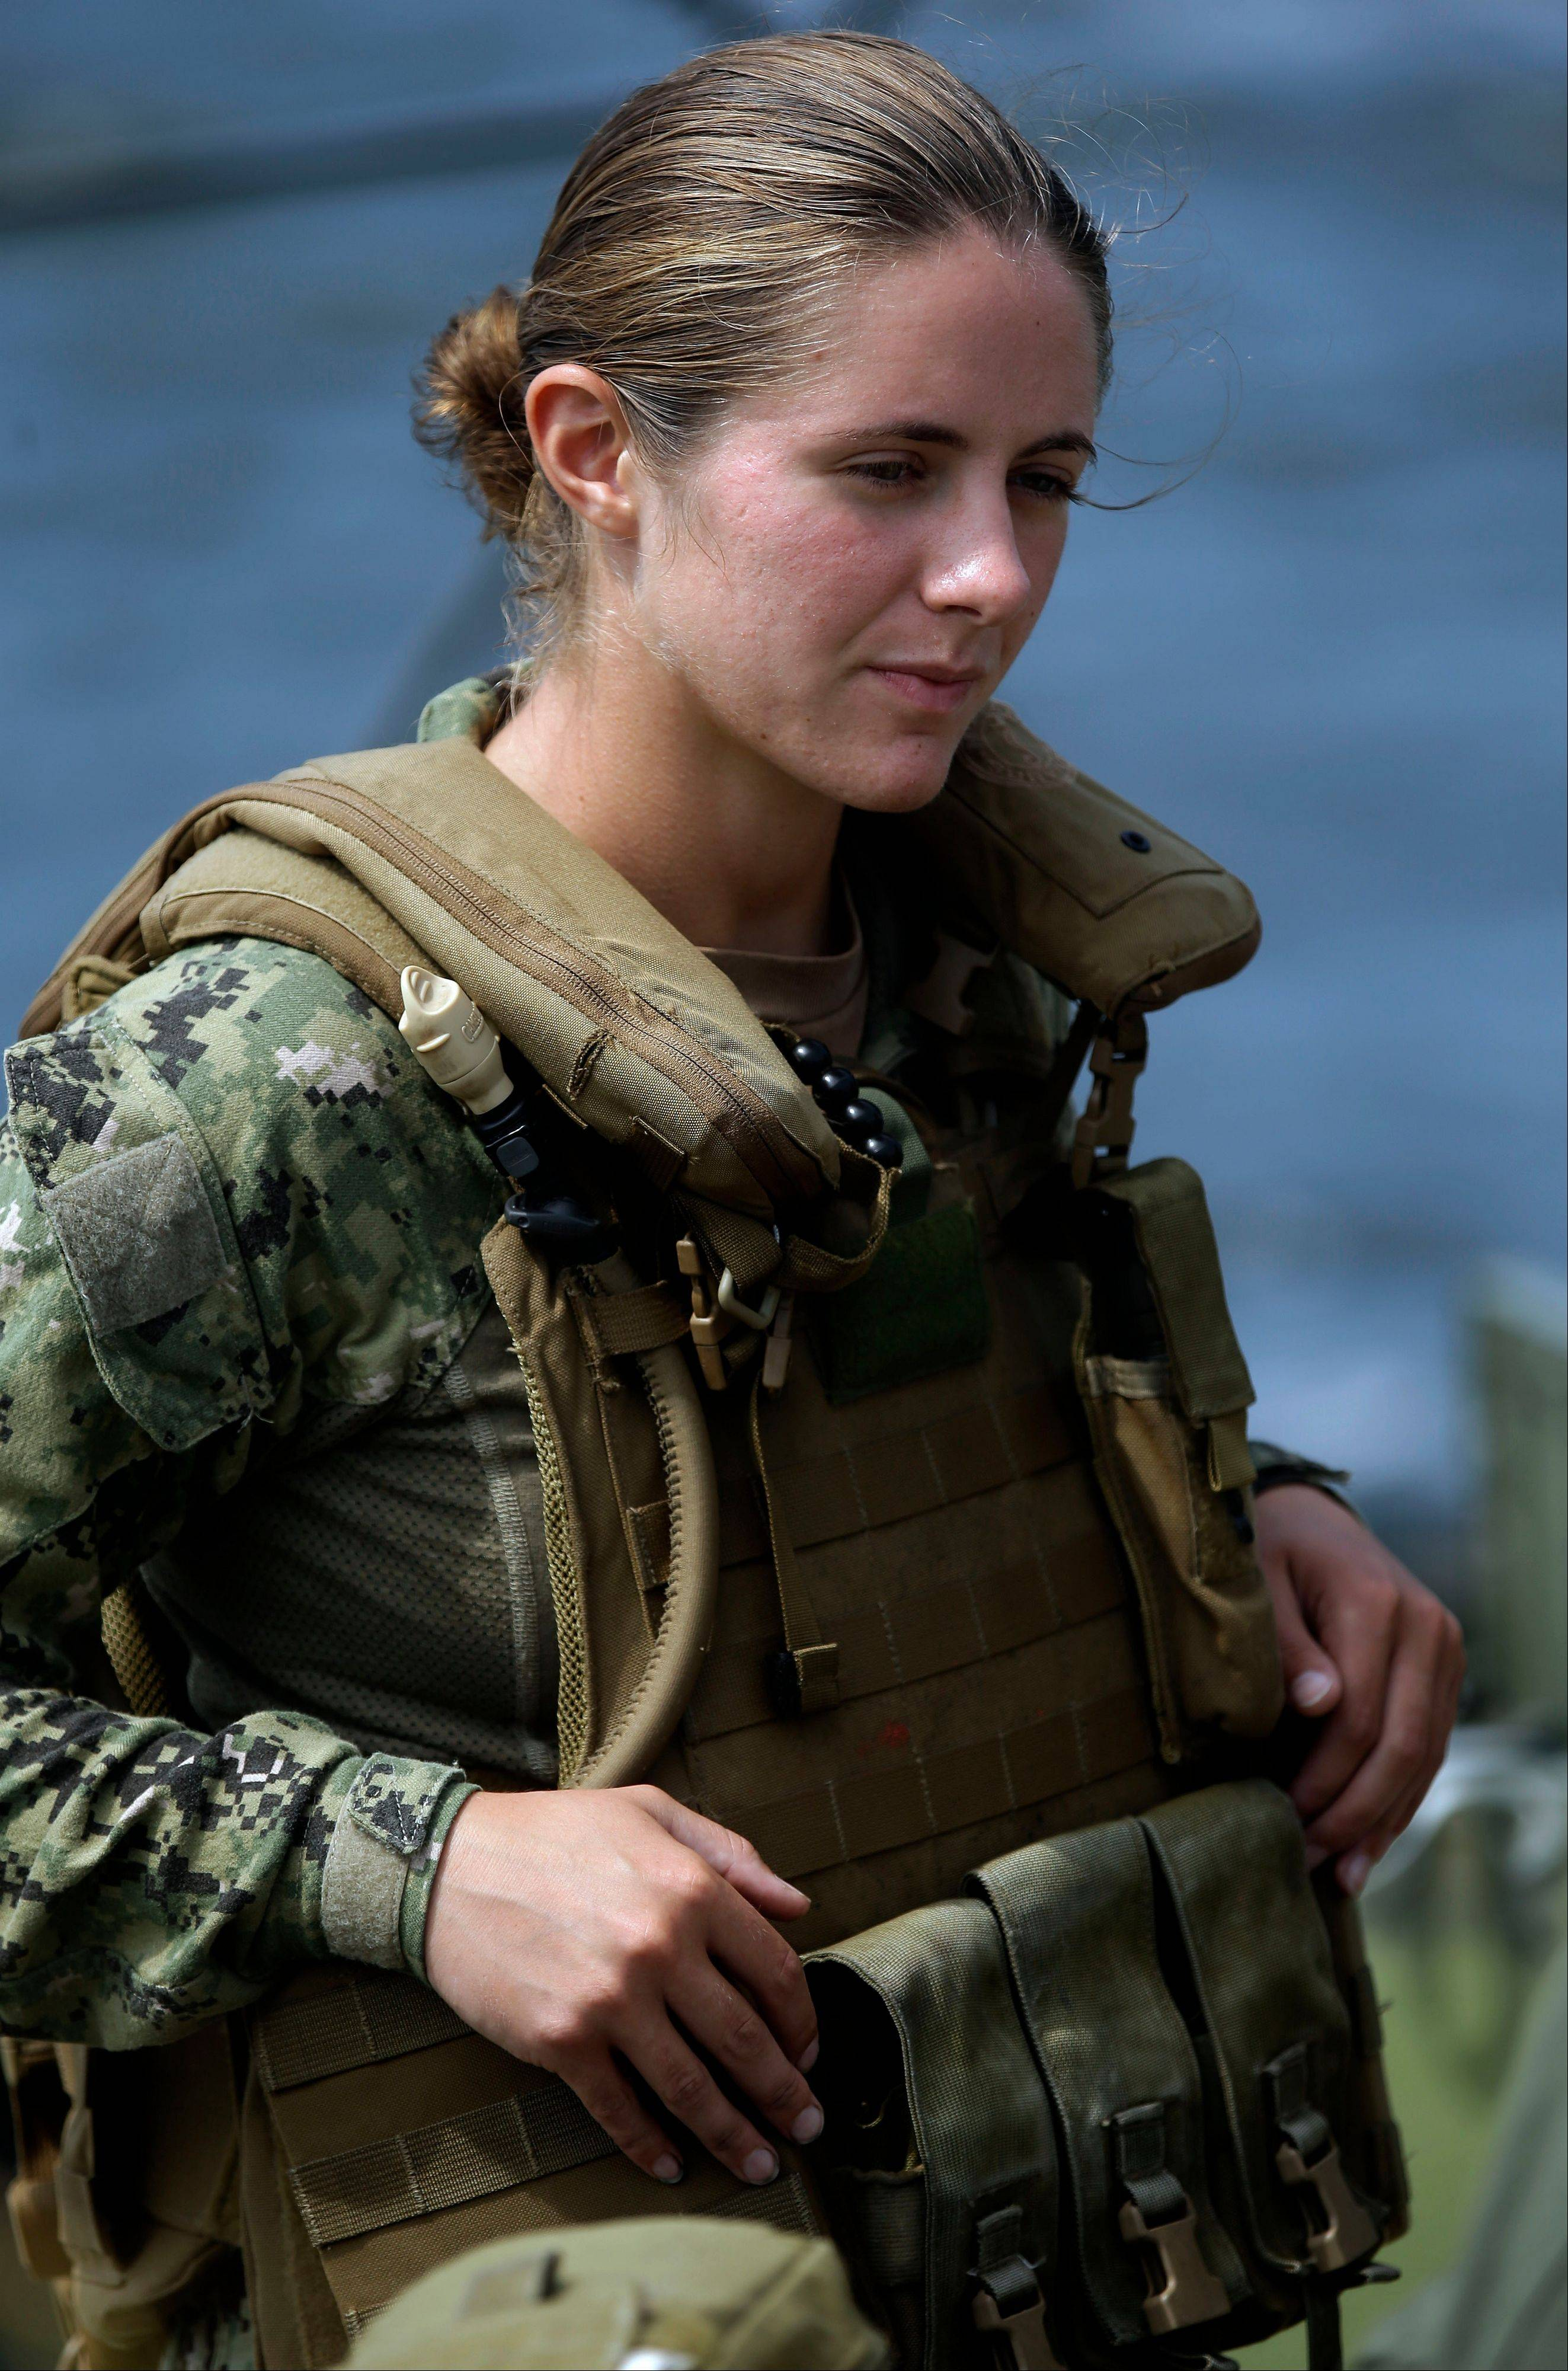 Navy Master-at-Arms Third Class Danielle Hinchliff of Coastal Riverine Squadron 2 listens while training during a U.S. Navy Riverine Crewman Course at the Center for Security Forces Learning Site at Camp Lejeune, N.C. This is the first time female participants have received this training as they begin to assume roles in combat.